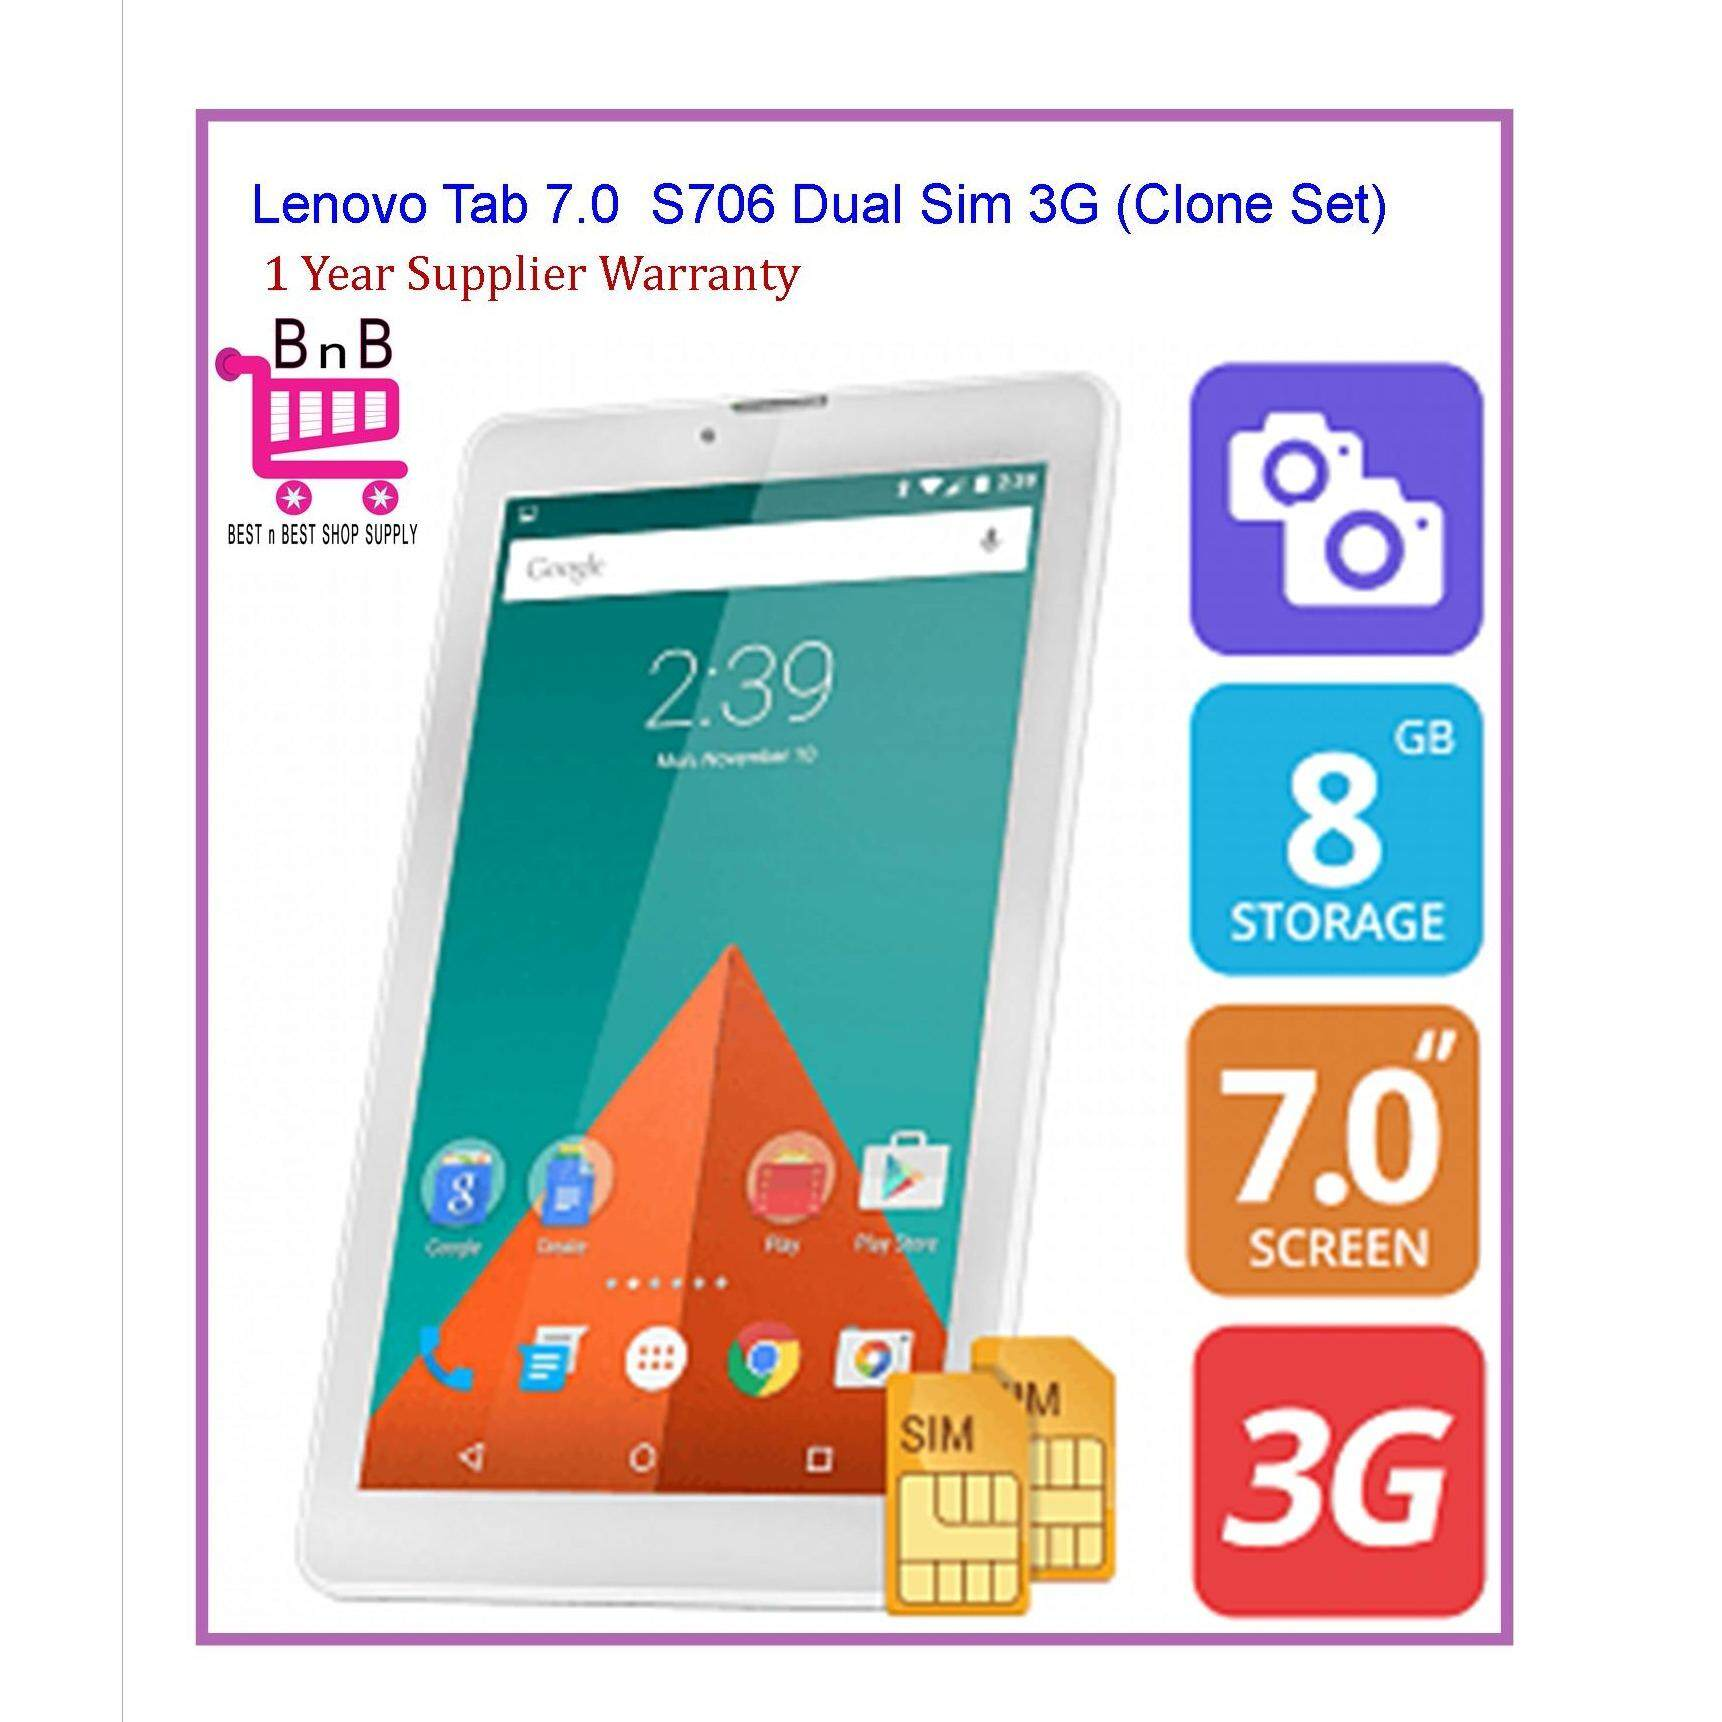 ... Lenovo Mobiles Tablets Price In Malaysia Best Touchscreen Mito T75 Black Update Indonesia 3g Call Tab